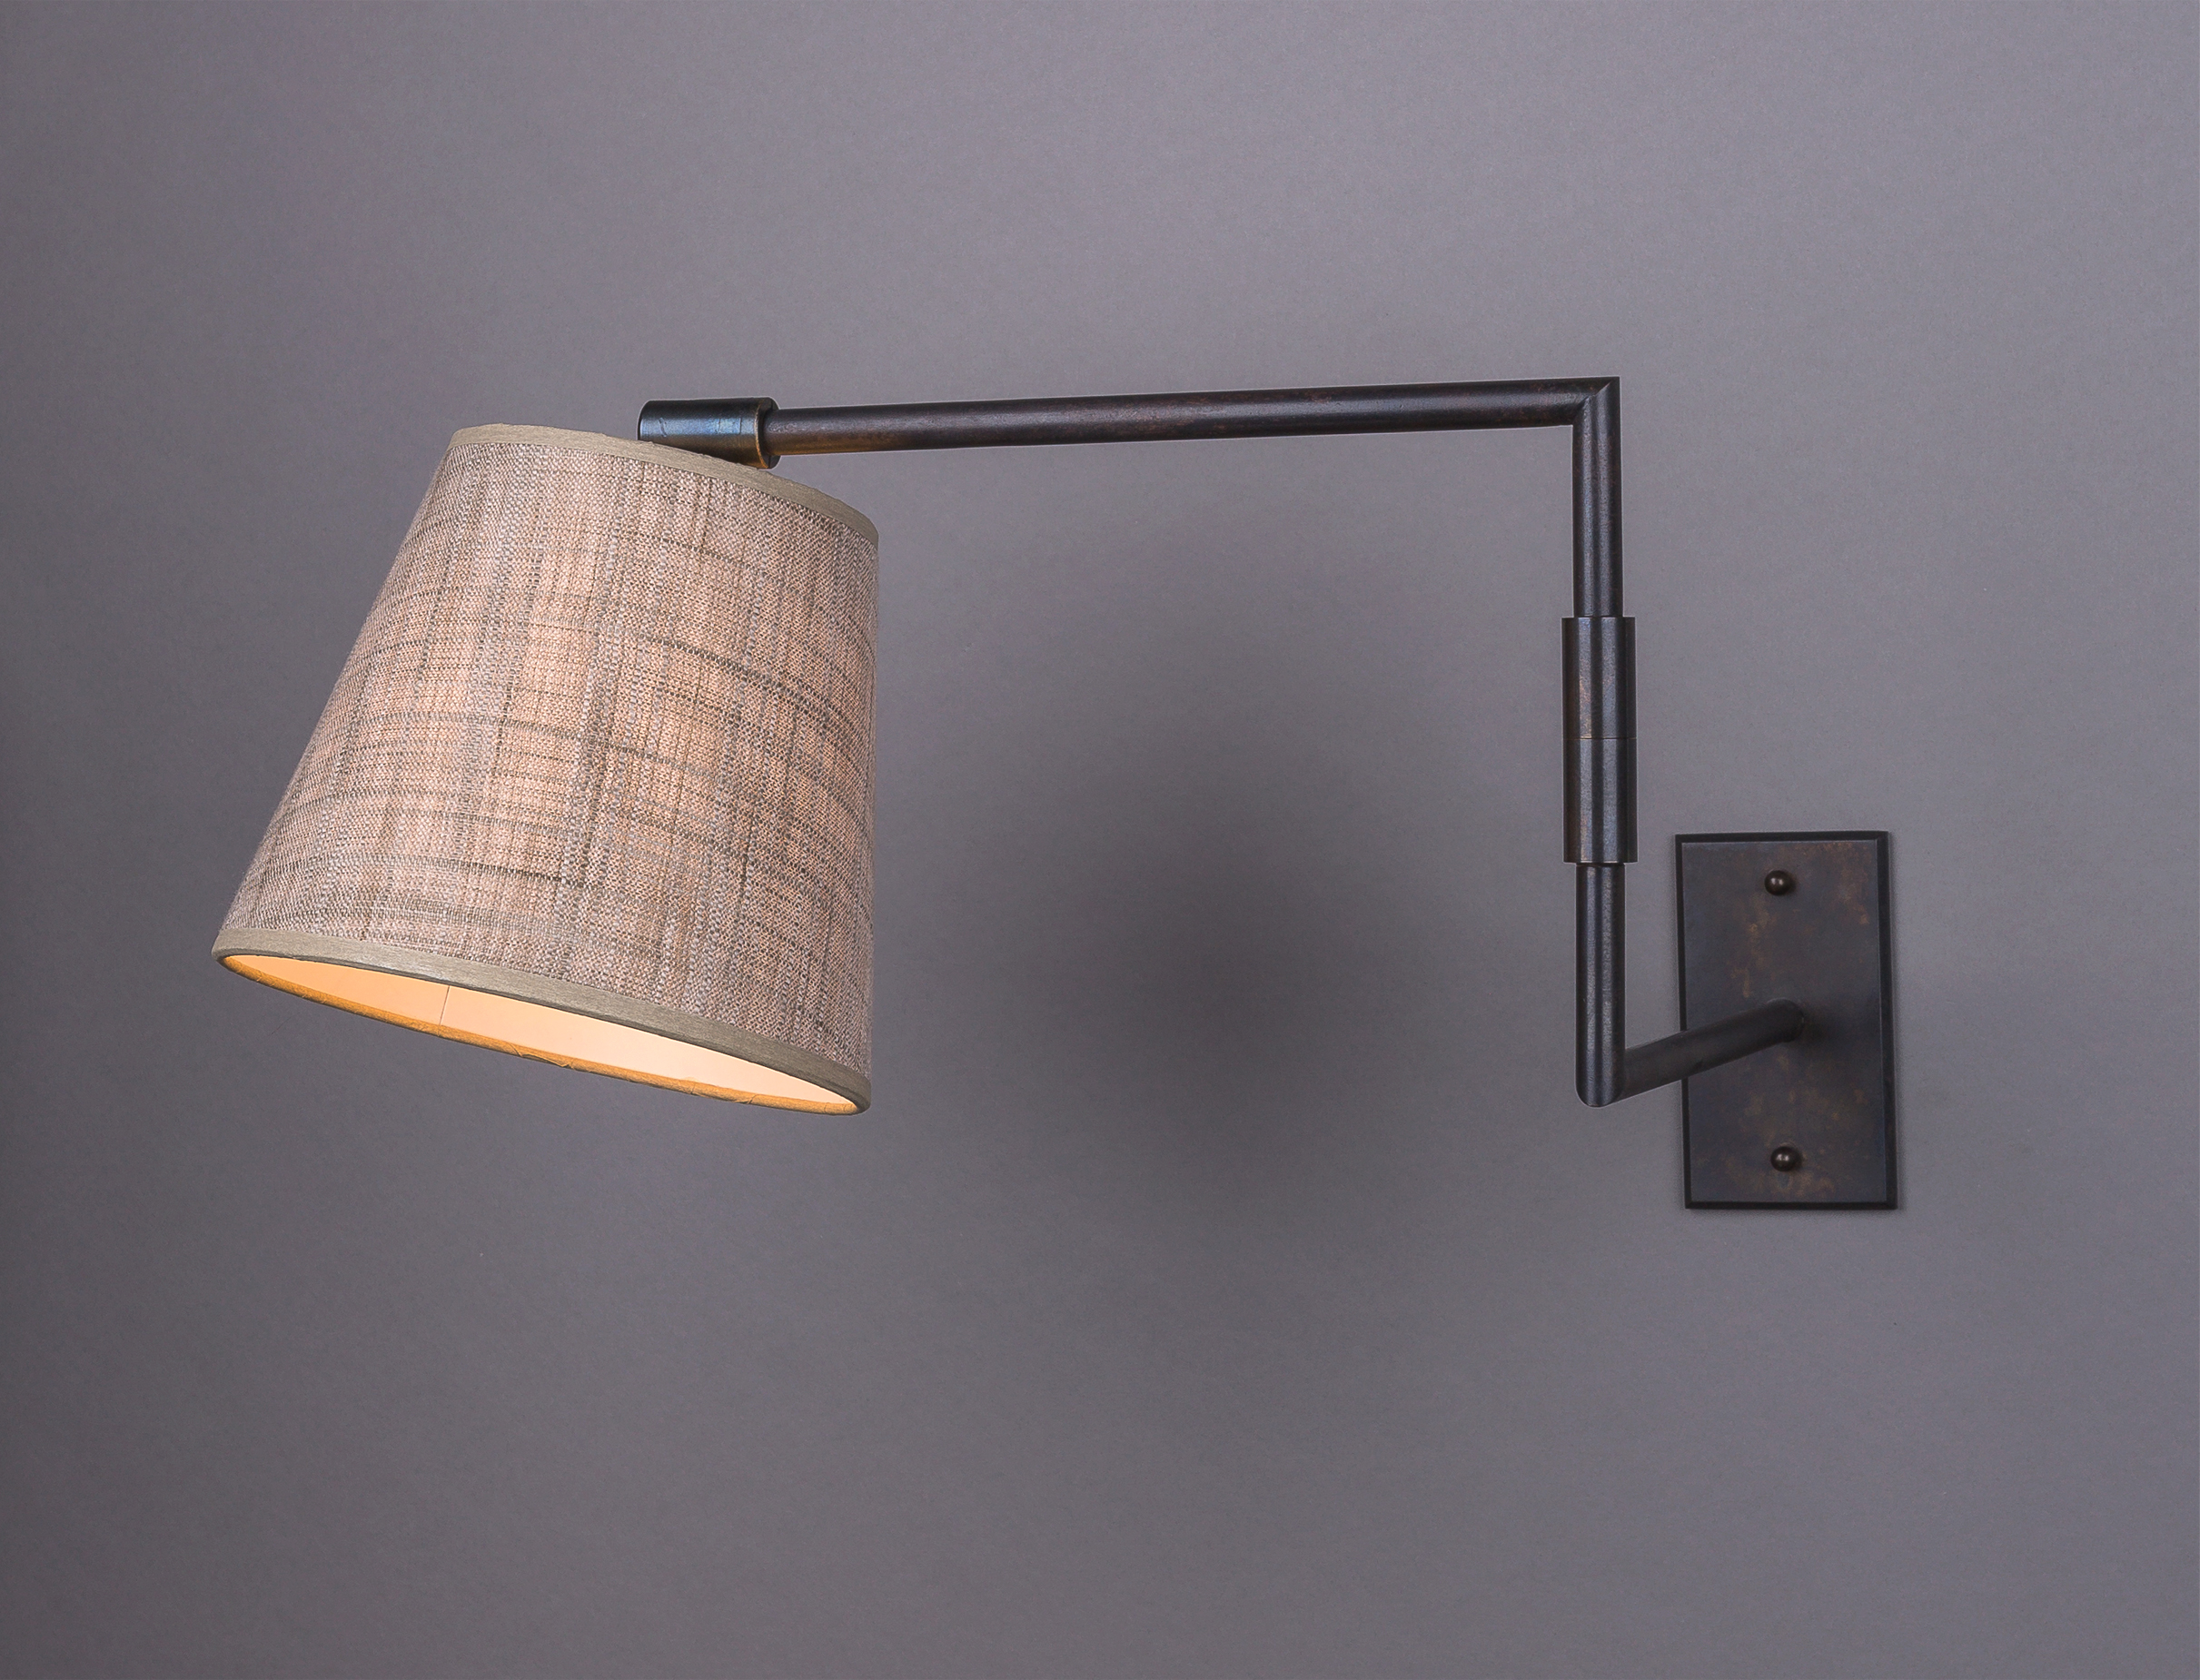 Jasper J Swing Arm   Distressed bronze / 260 beige linen shade.